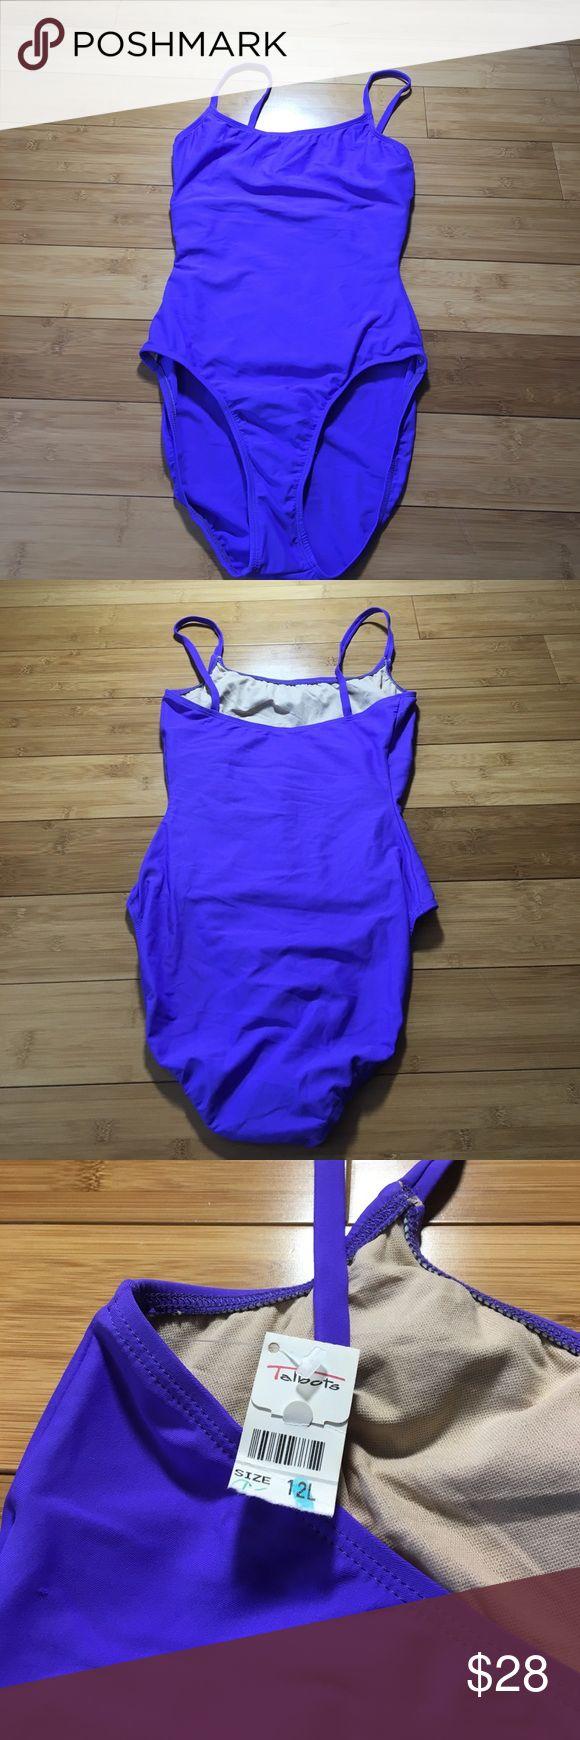 NWT Purple One Piece Bathing Suit Swim Tall 12 L new with tags Talbots swim suit Talbots Swim One Pieces